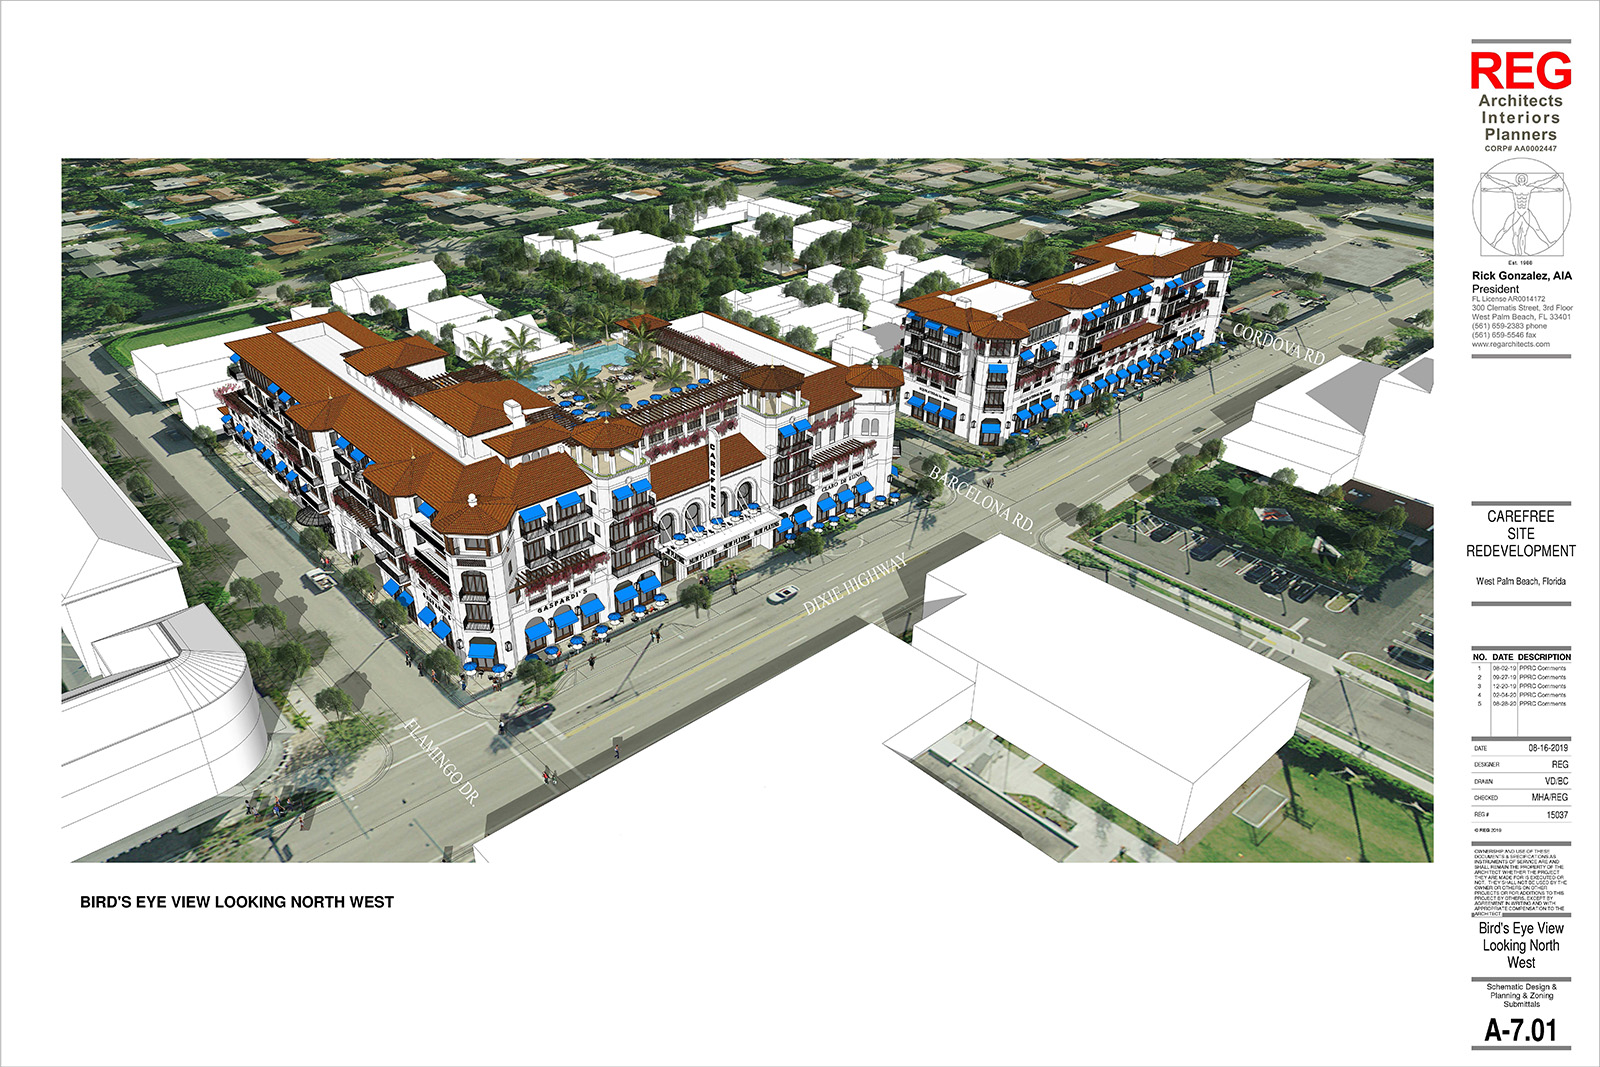 The proposed Carefree is more than 3 times the height of single-family homes in El Cid.